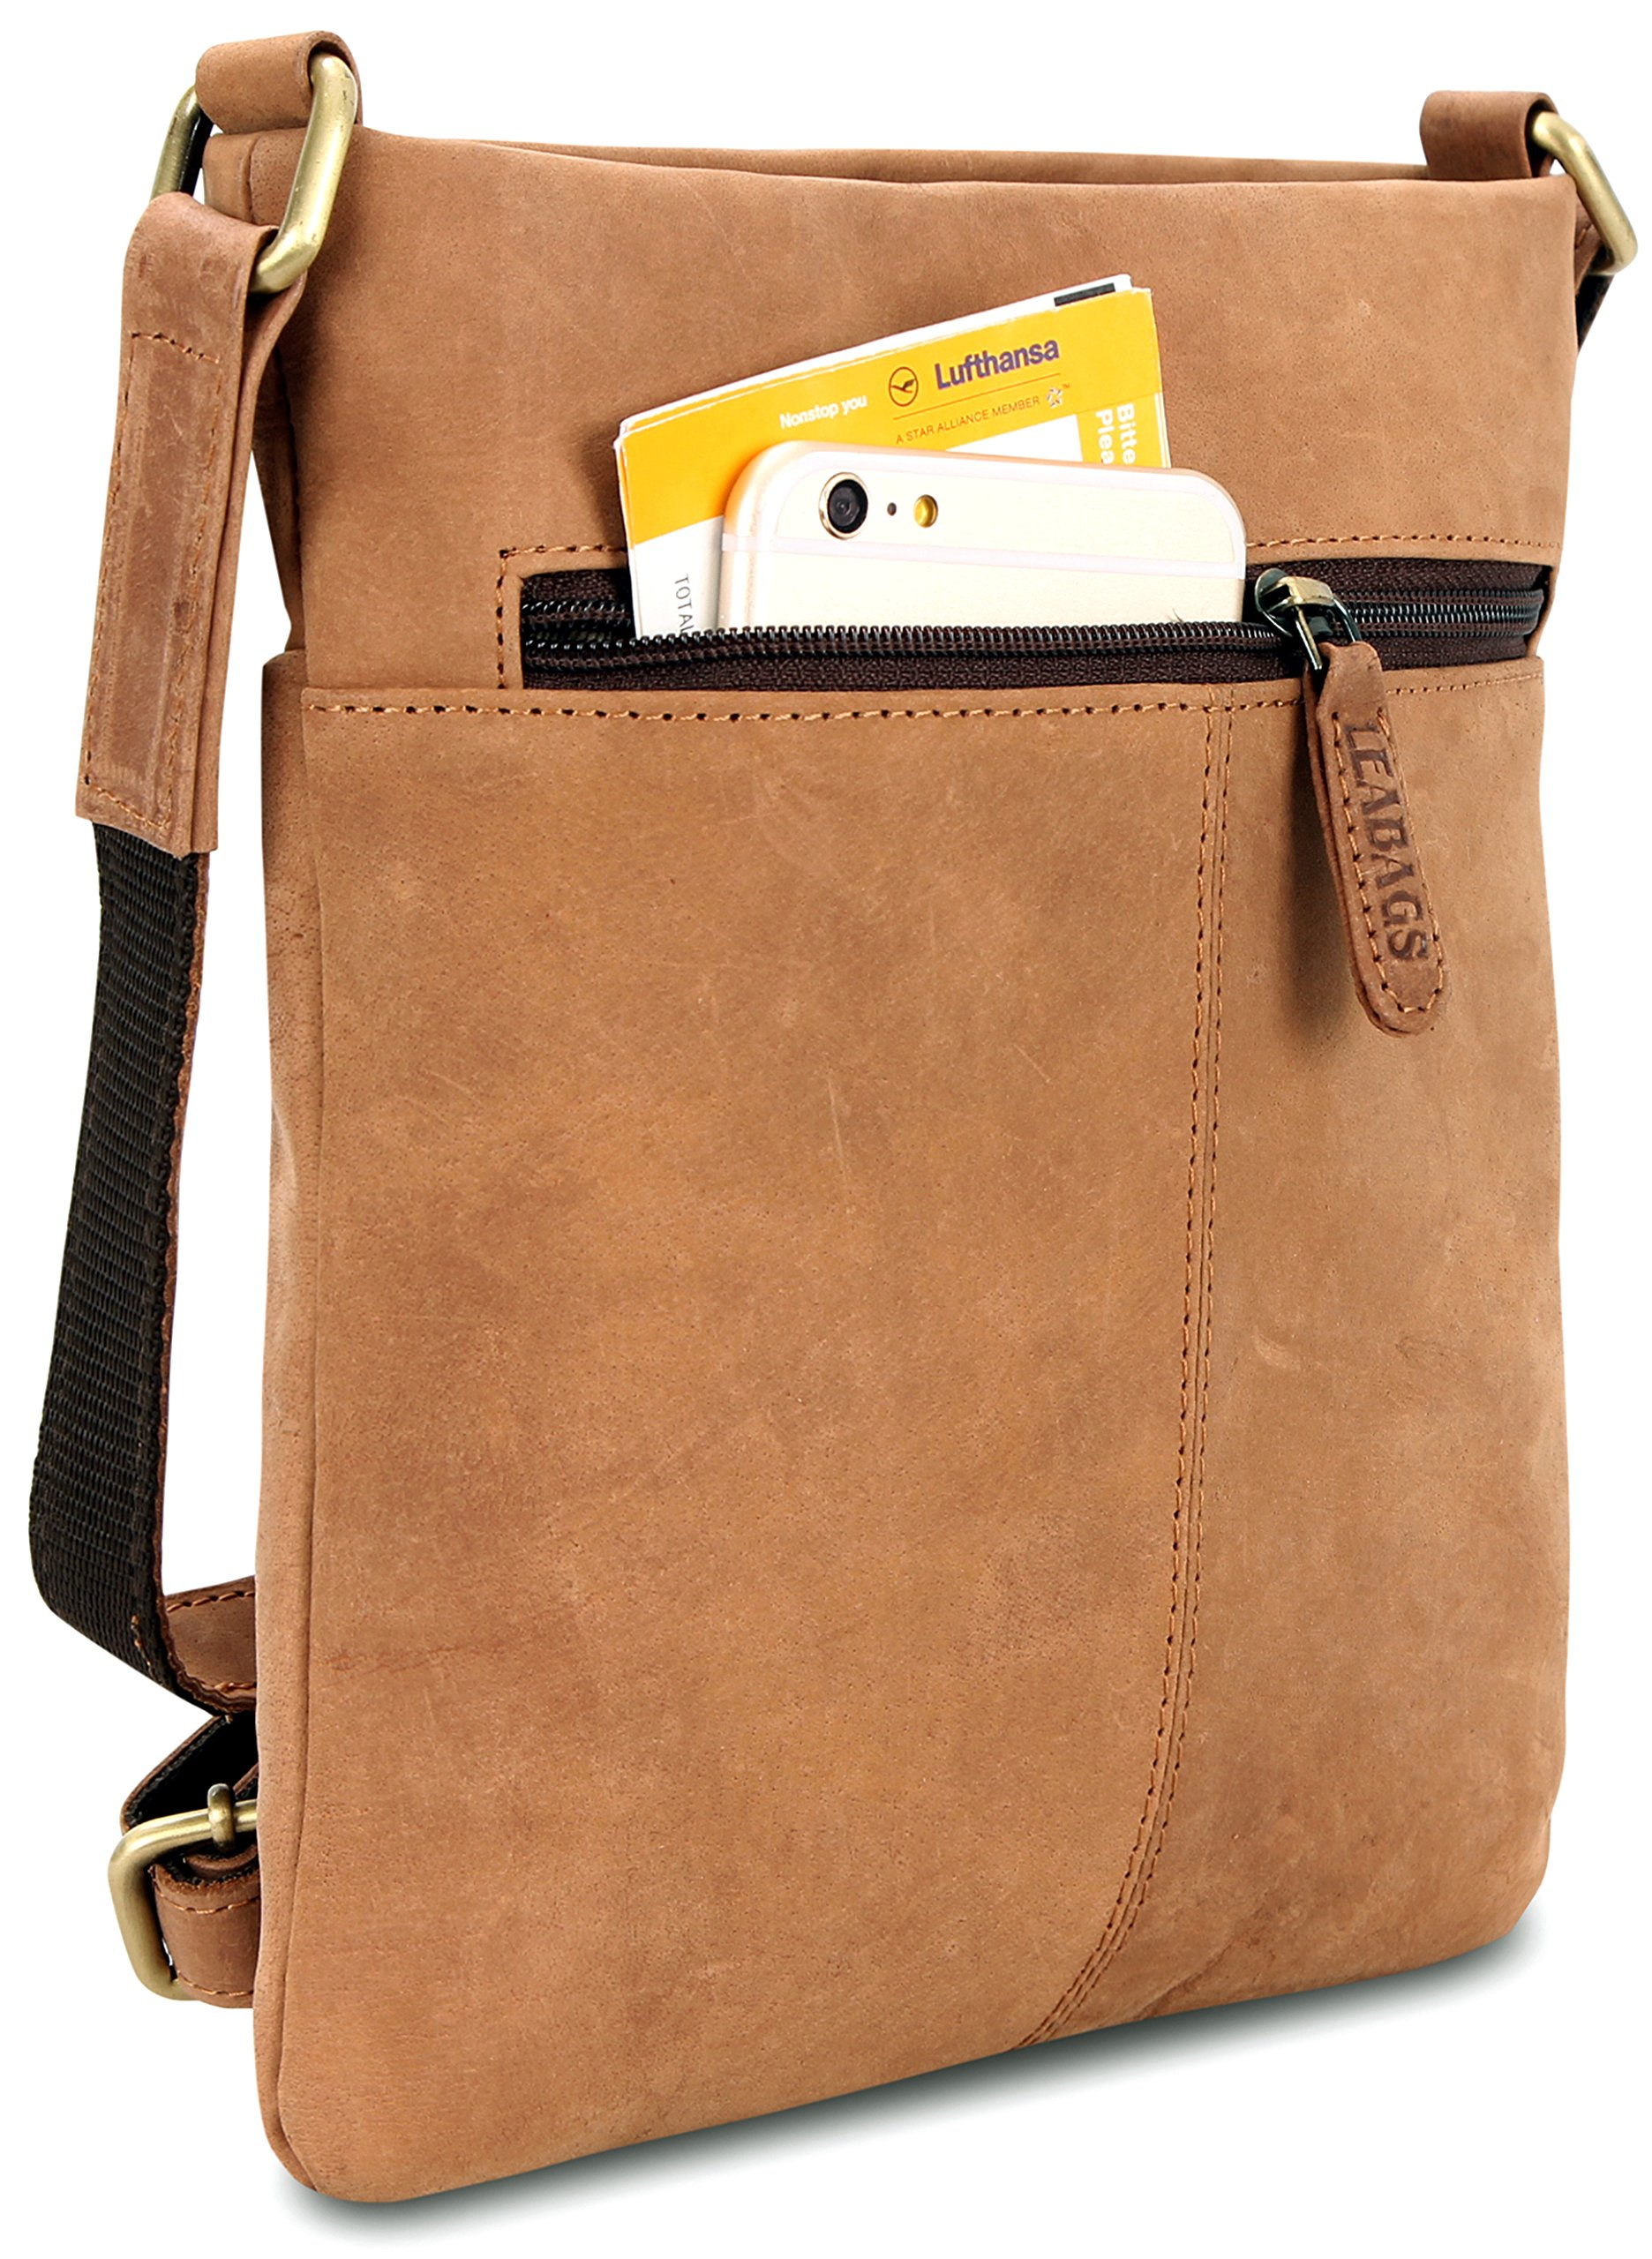 LEABAGS Seattle genuine buffalo leather crossbody bag in vintage style - Brown by LEABAGS (Image #6)